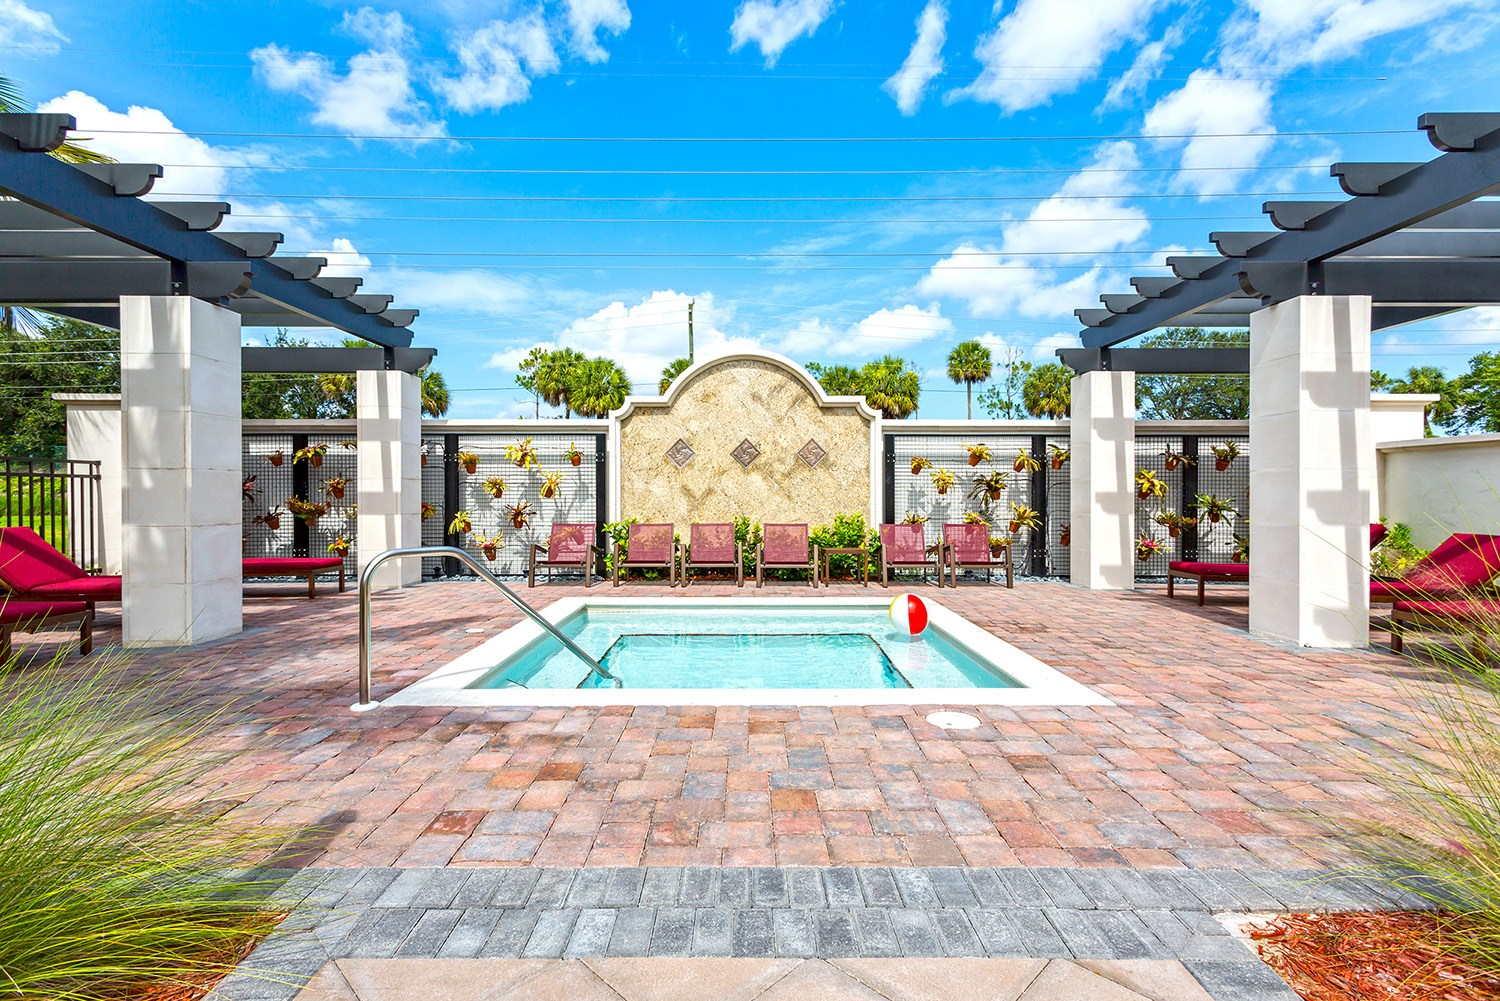 Hot Tub at Orchid Run Apartments in Naples, FL